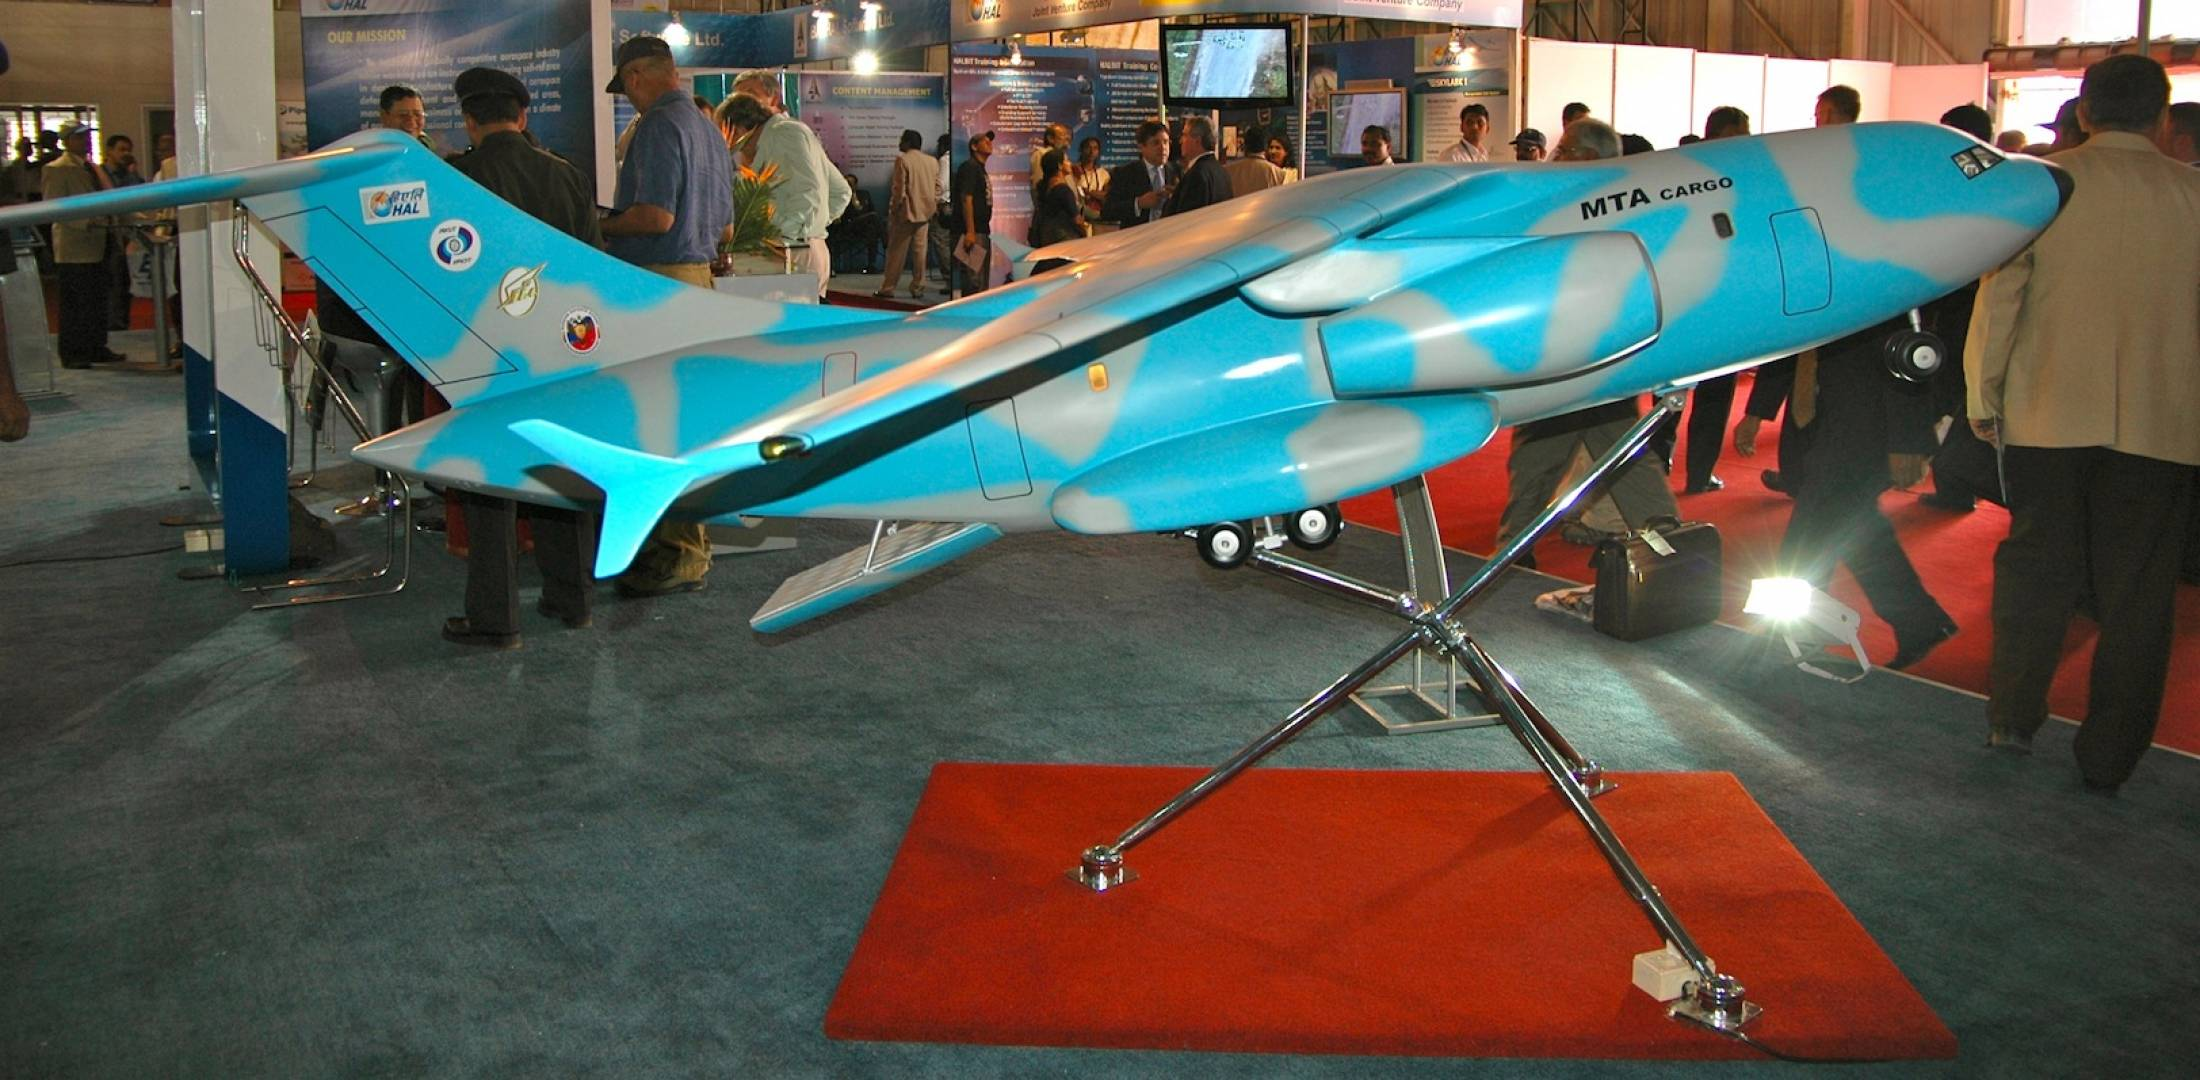 Scale model of the Il-214 medium transport